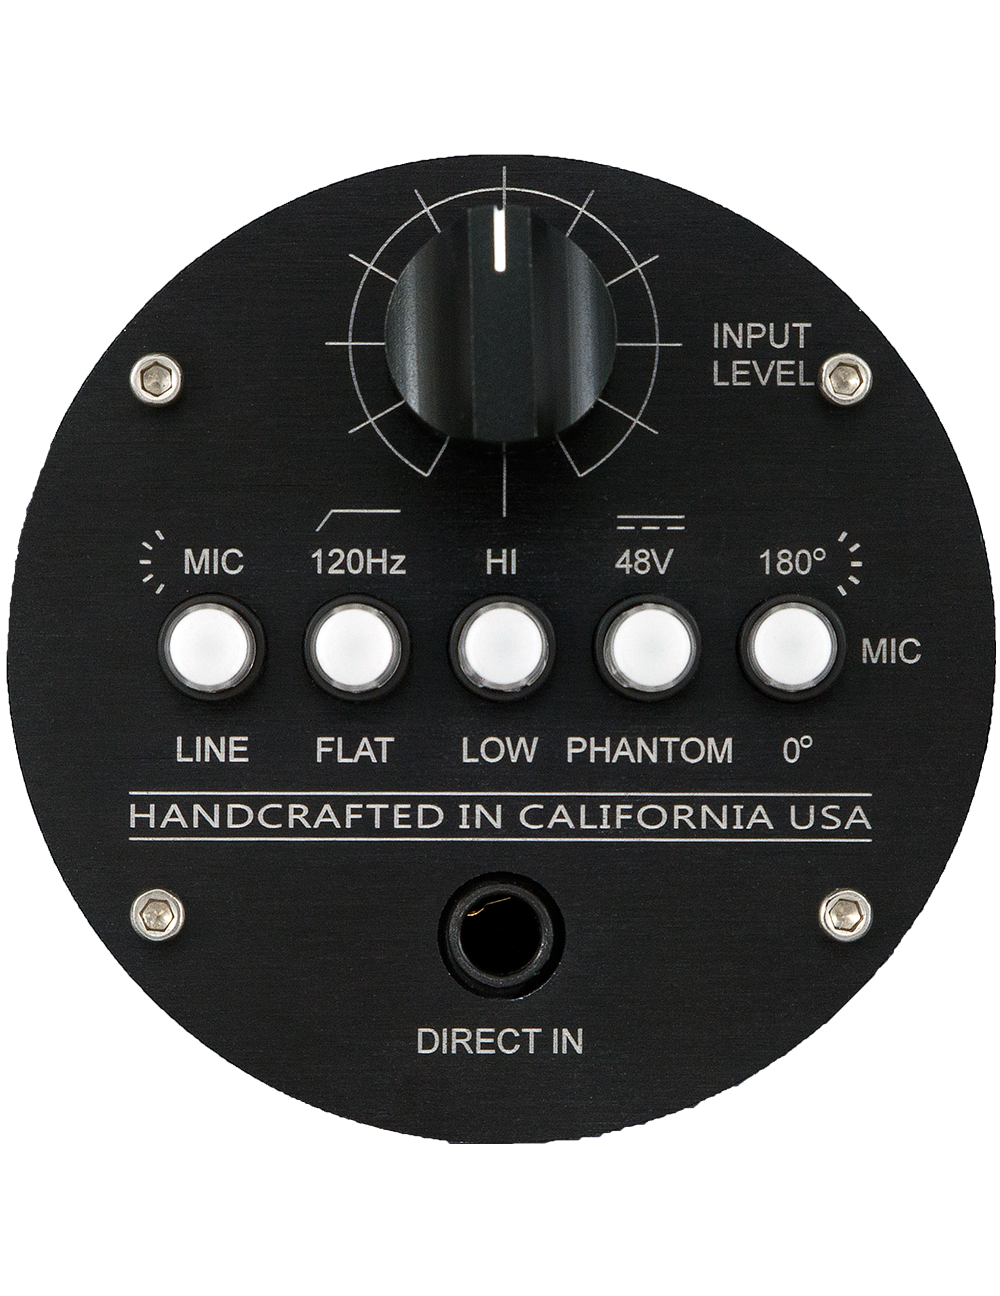 FRONT PANEL CONTROLS + DIRECT INPUT - 48V Phantom power switch120Hz High Pass Filter switchPhase Invert switchInput Attenuator (Variable Pad)Mic Pre Selectable Gain 40dB or 60dBLine Amp Selectable Gain 20dB or 40dBDIRECT IN: Similar to the DI in the Manley SLAM!®, this all-discrete solid-state circuit with 10 Meg Ohm input impedance is perfect for guitars, bass, keyboards, etc.